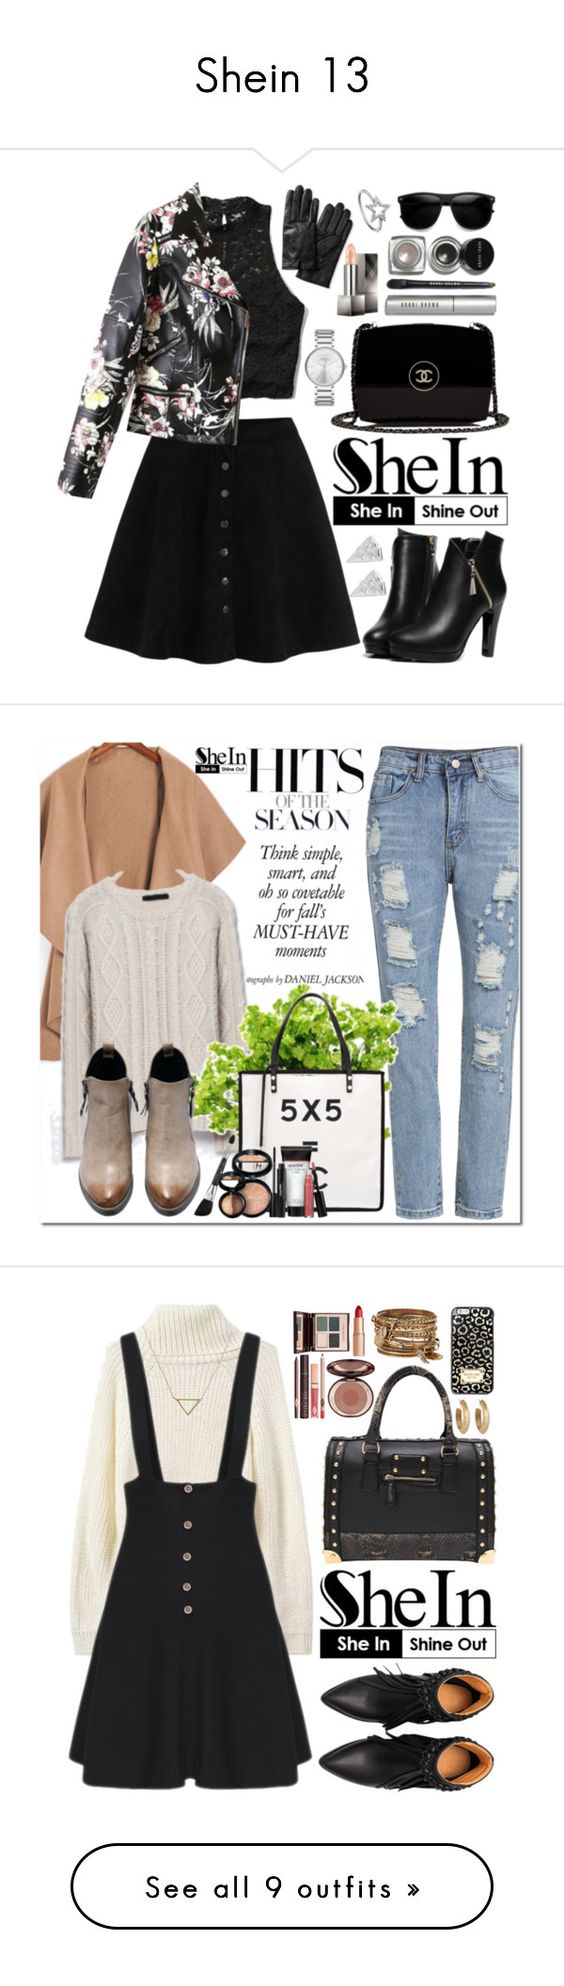 """Shein 13"" by oshint on Polyvore featuring Banana Republic, Abercrombie & Fitch, Chanel, Bobbi Brown Cosmetics, Burberry, Marc by Marc Jacobs, KC Designs, Rock 'N Rose, shein and Laura Geller"